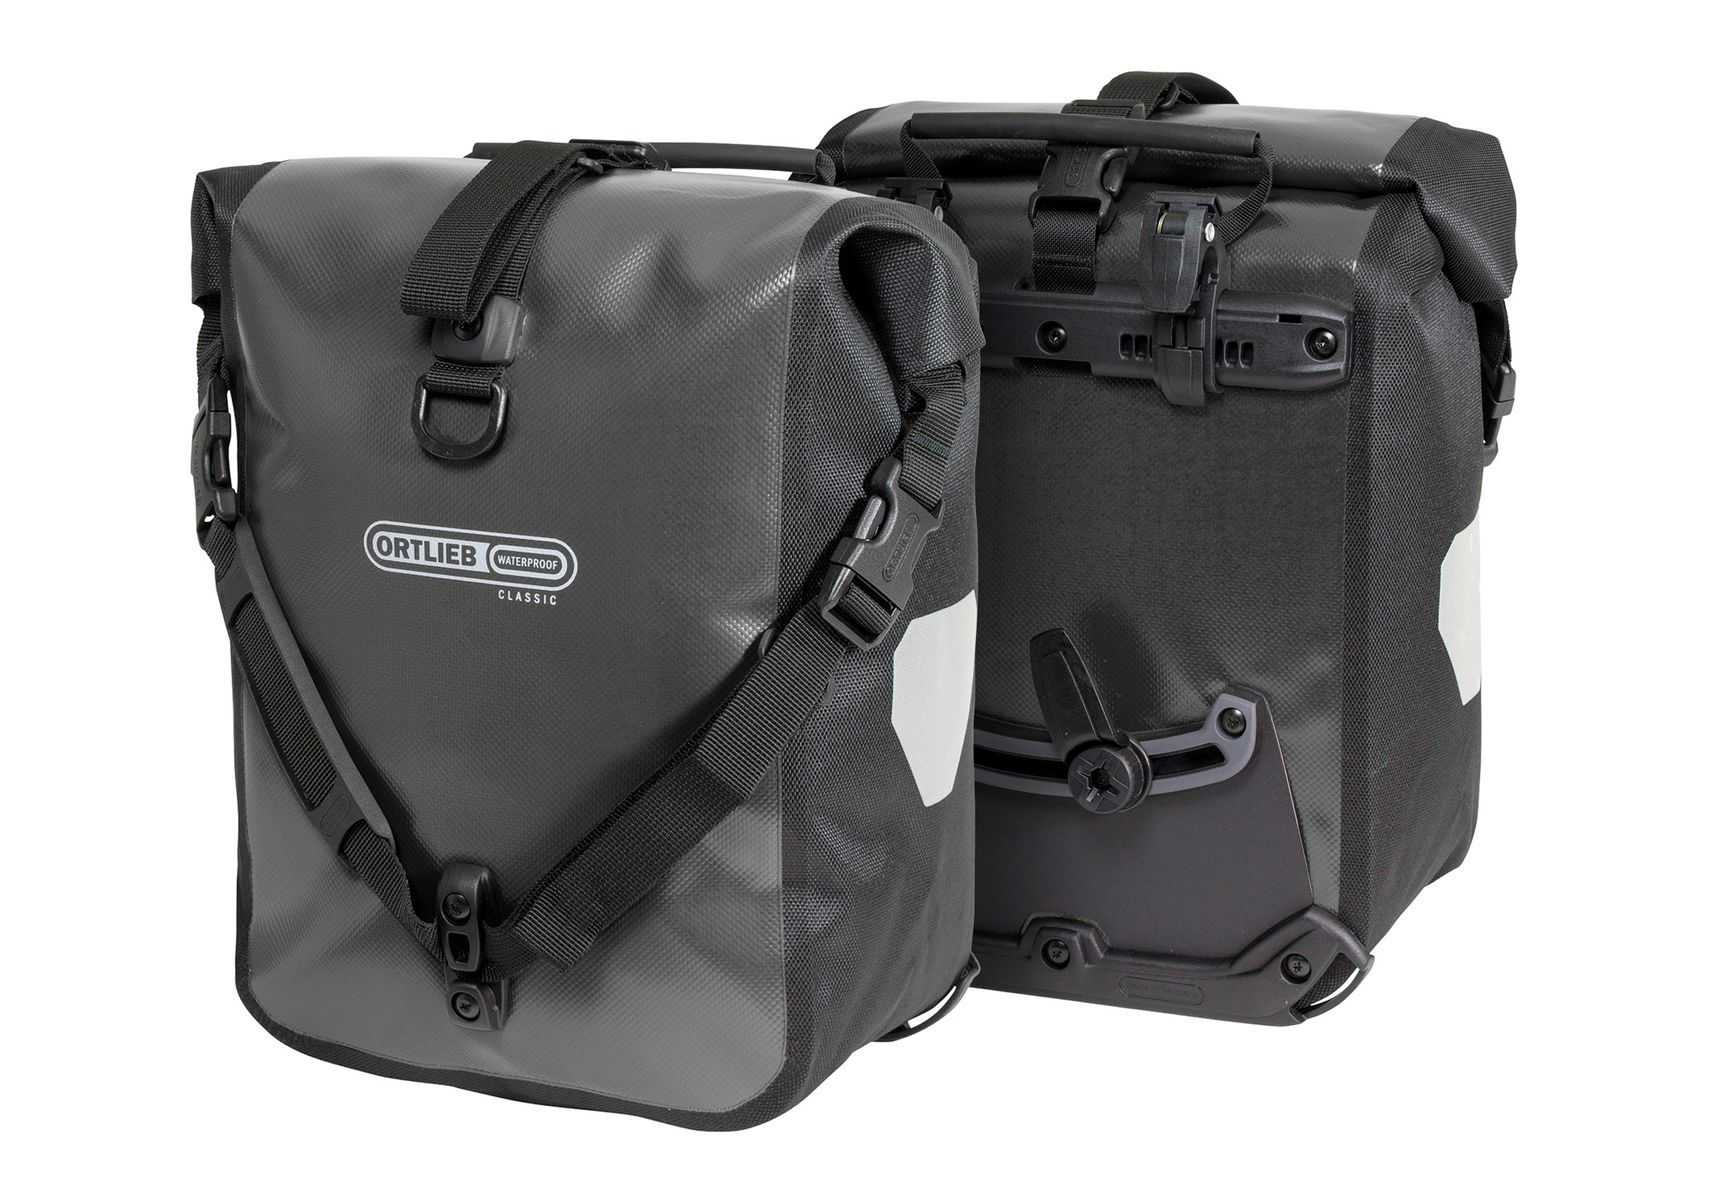 Sport Roller Classic set of two pannier bags